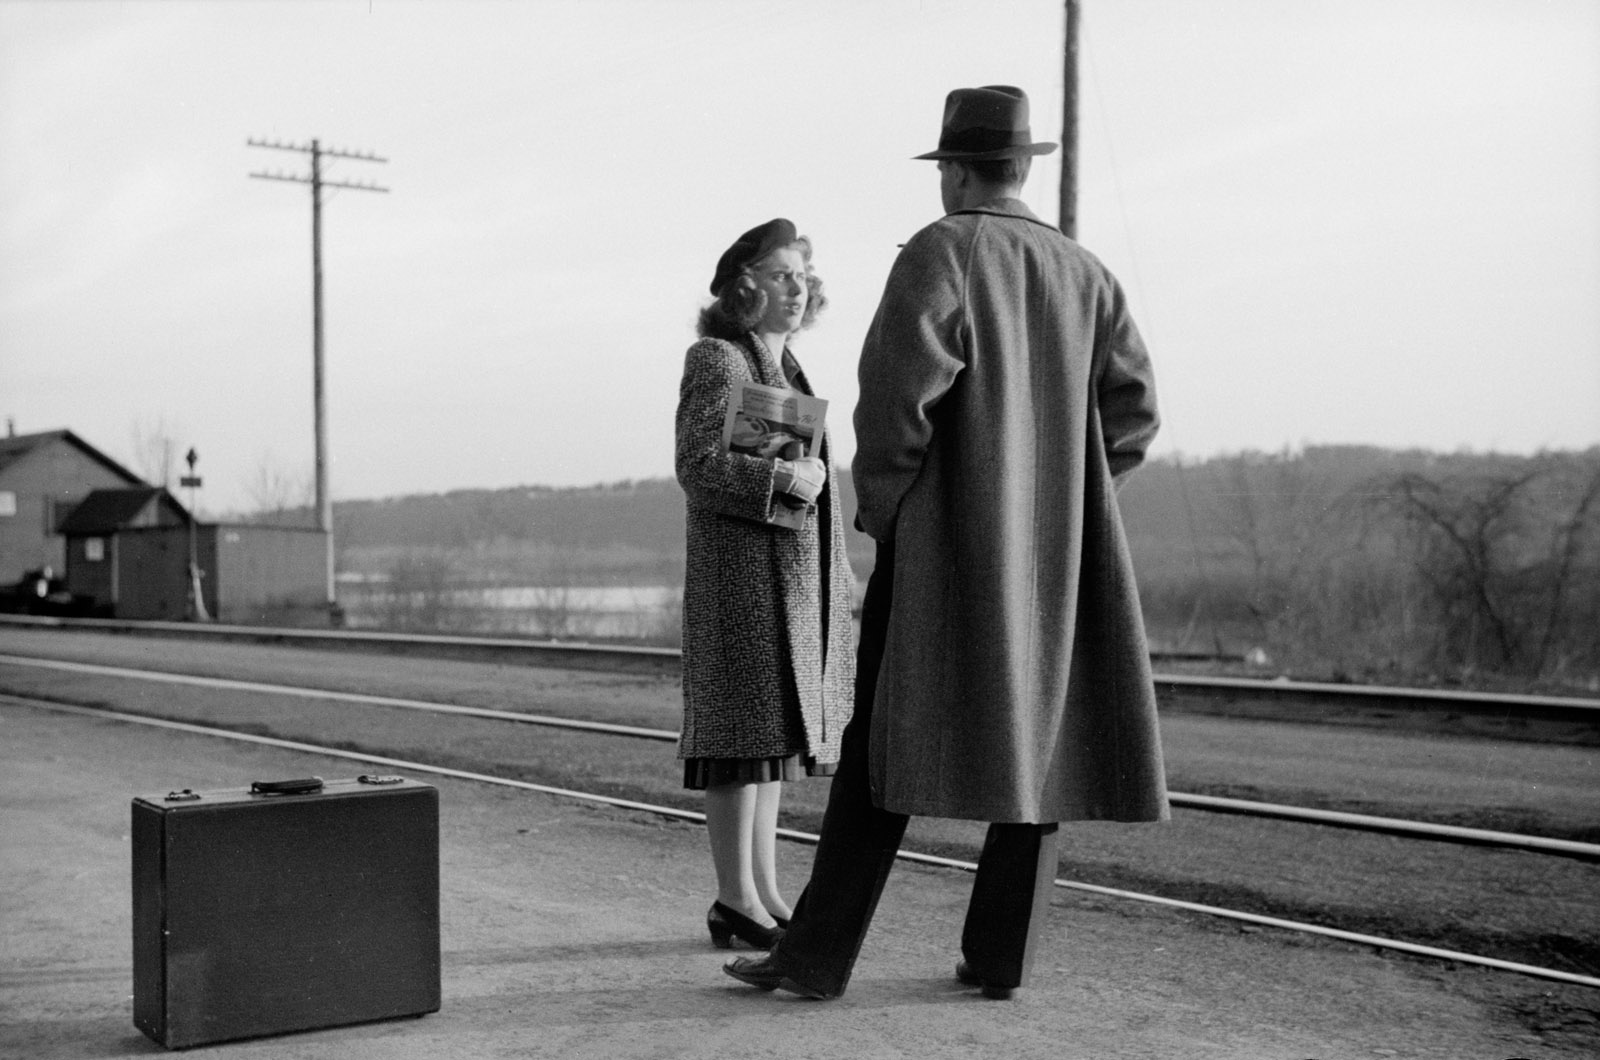 Waiting for the train to Minneapolis, East Dubuque, Illinois, April 1940